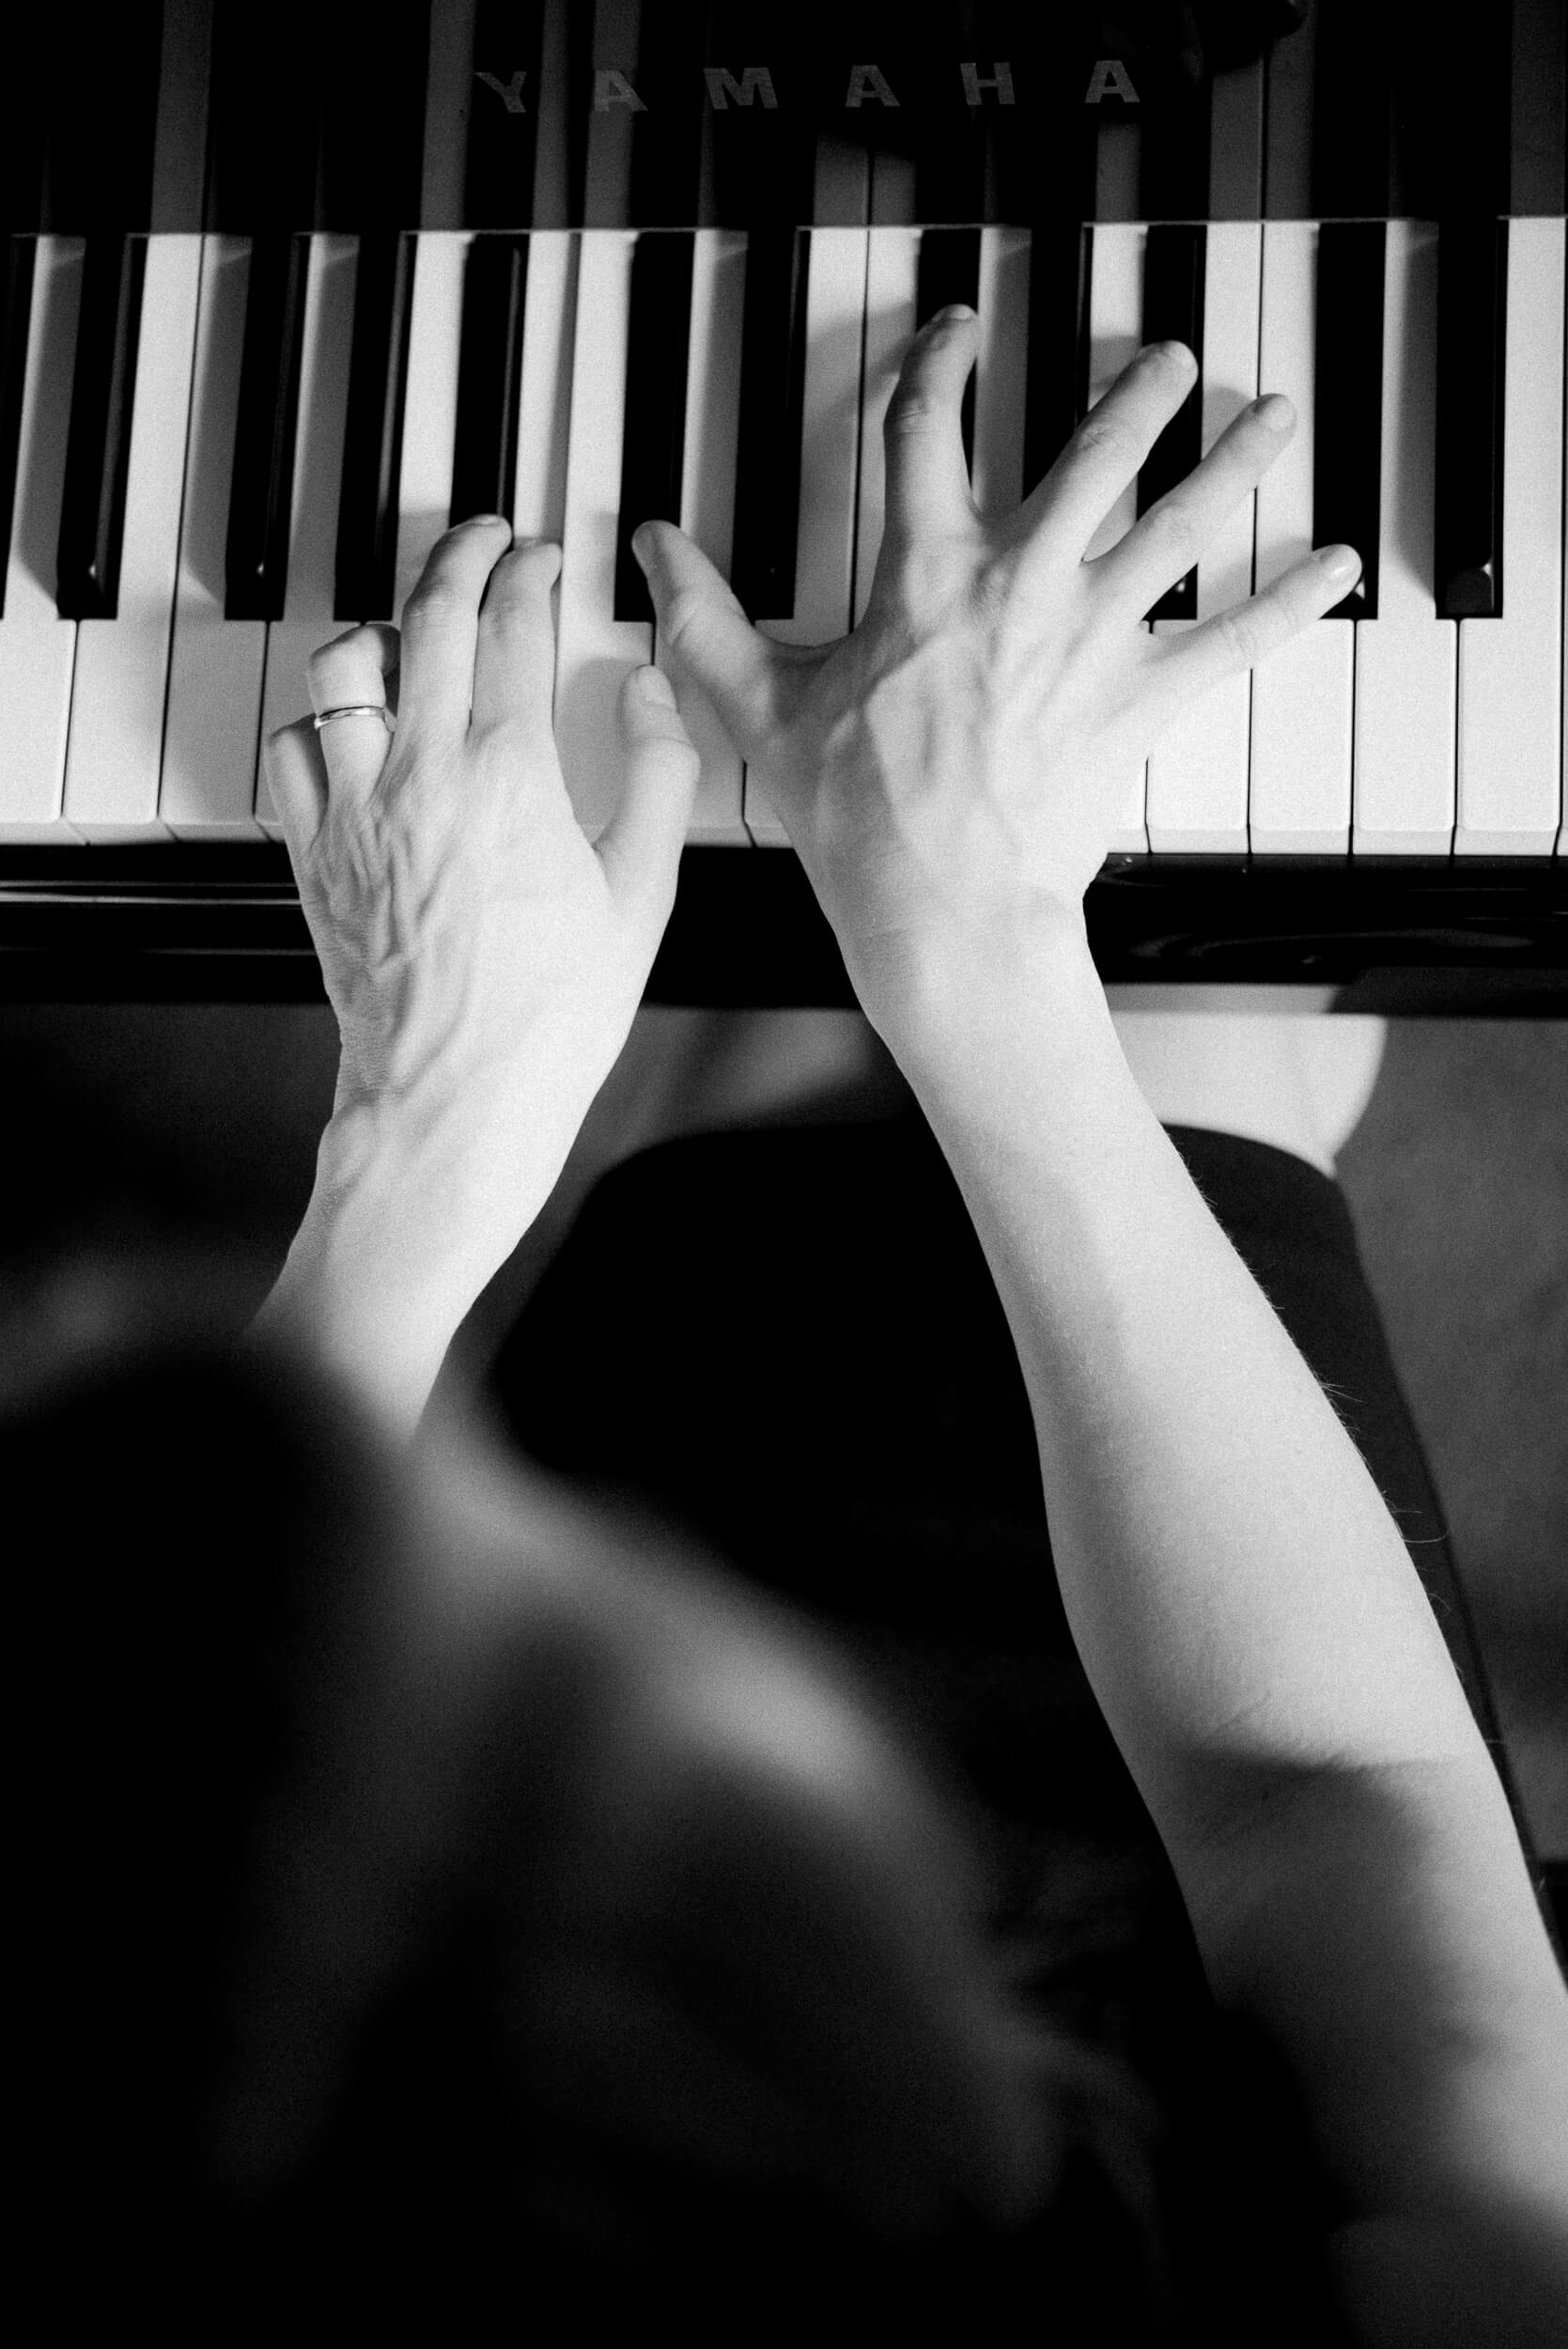 Jen Allen jazz piano Branding Headshot Session black and white image of hands on piano keys in the Choral Room at Taft School in Litchfield County by Lindsey Victoria Photography